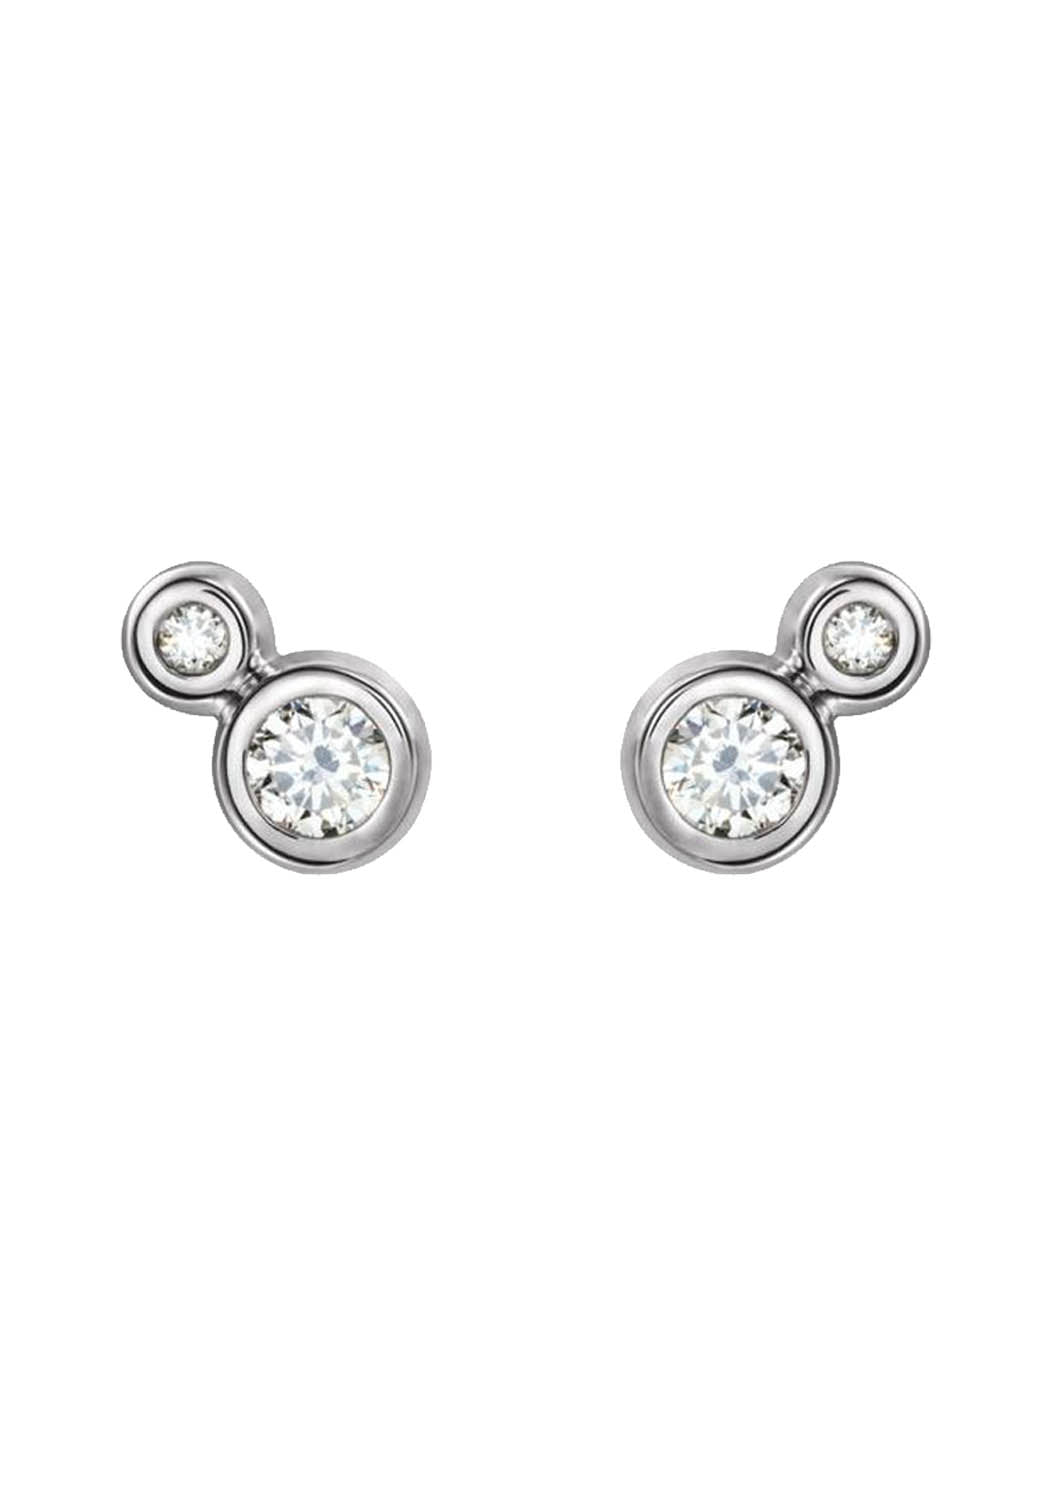 14K White Gold Double Diamond Stud Earrings